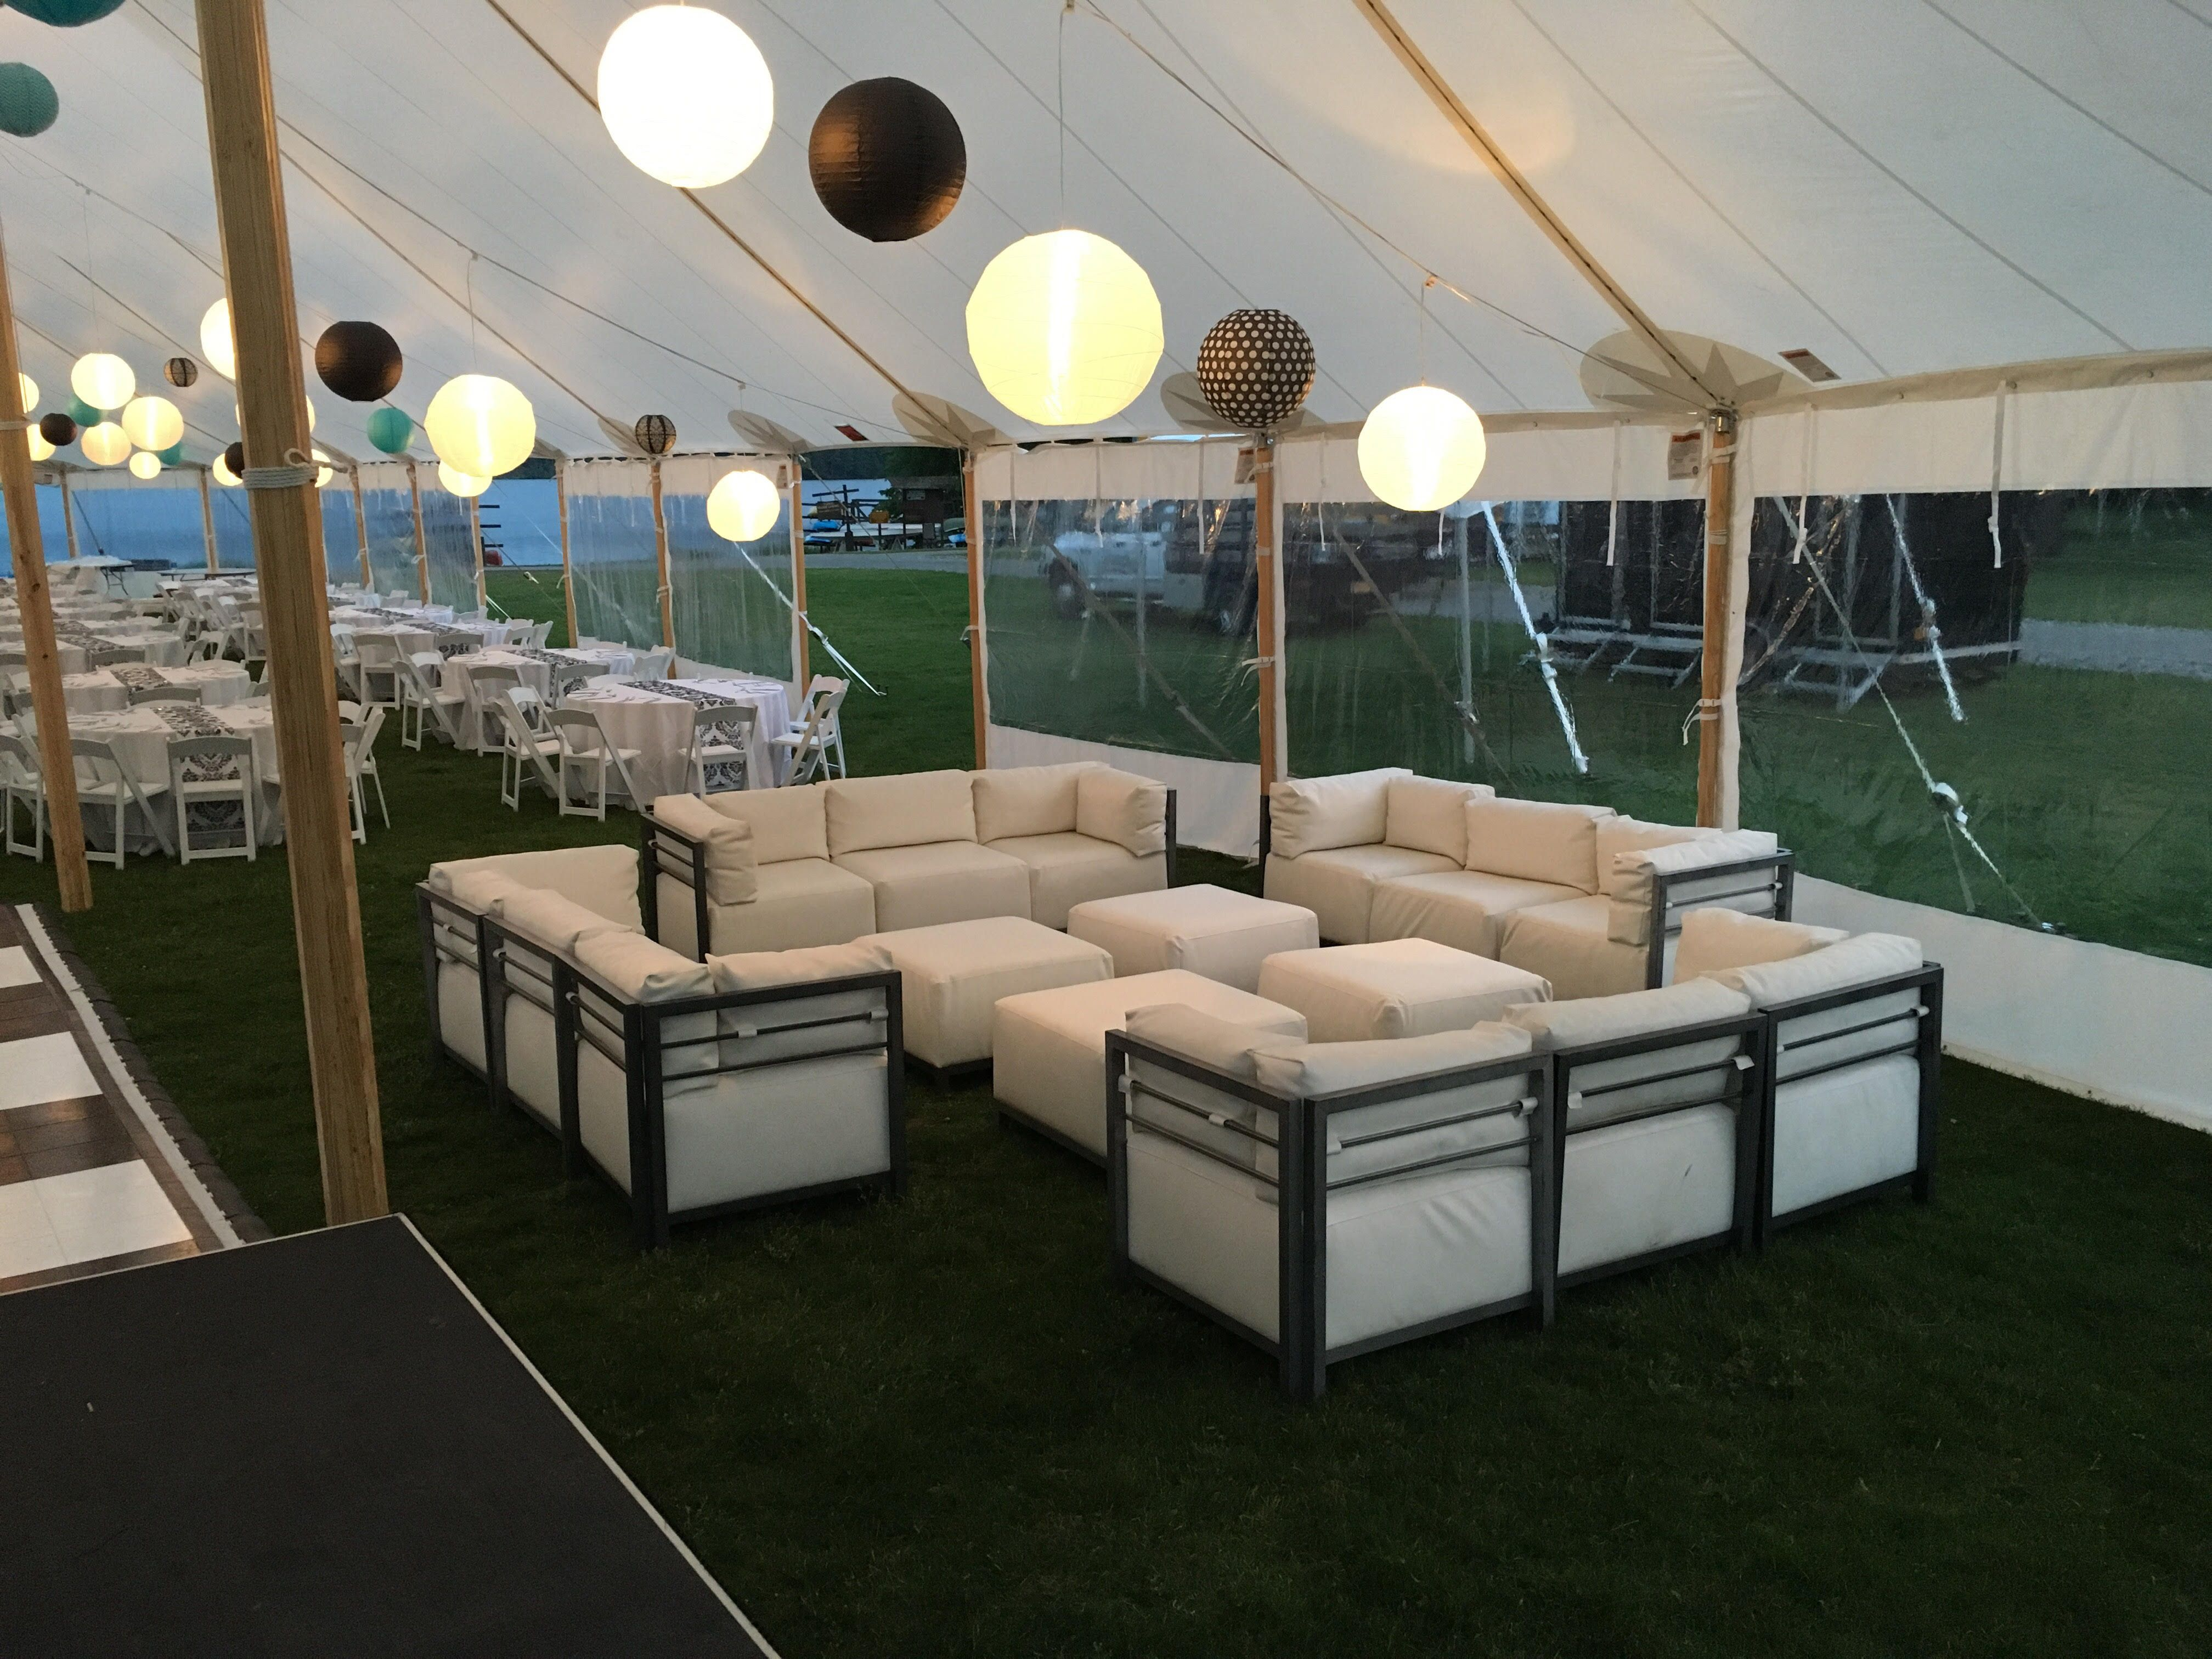 A Lounge Setting Of Our Axis Furniture By Taylor Rentals / Party Plus In  Plattsburg,